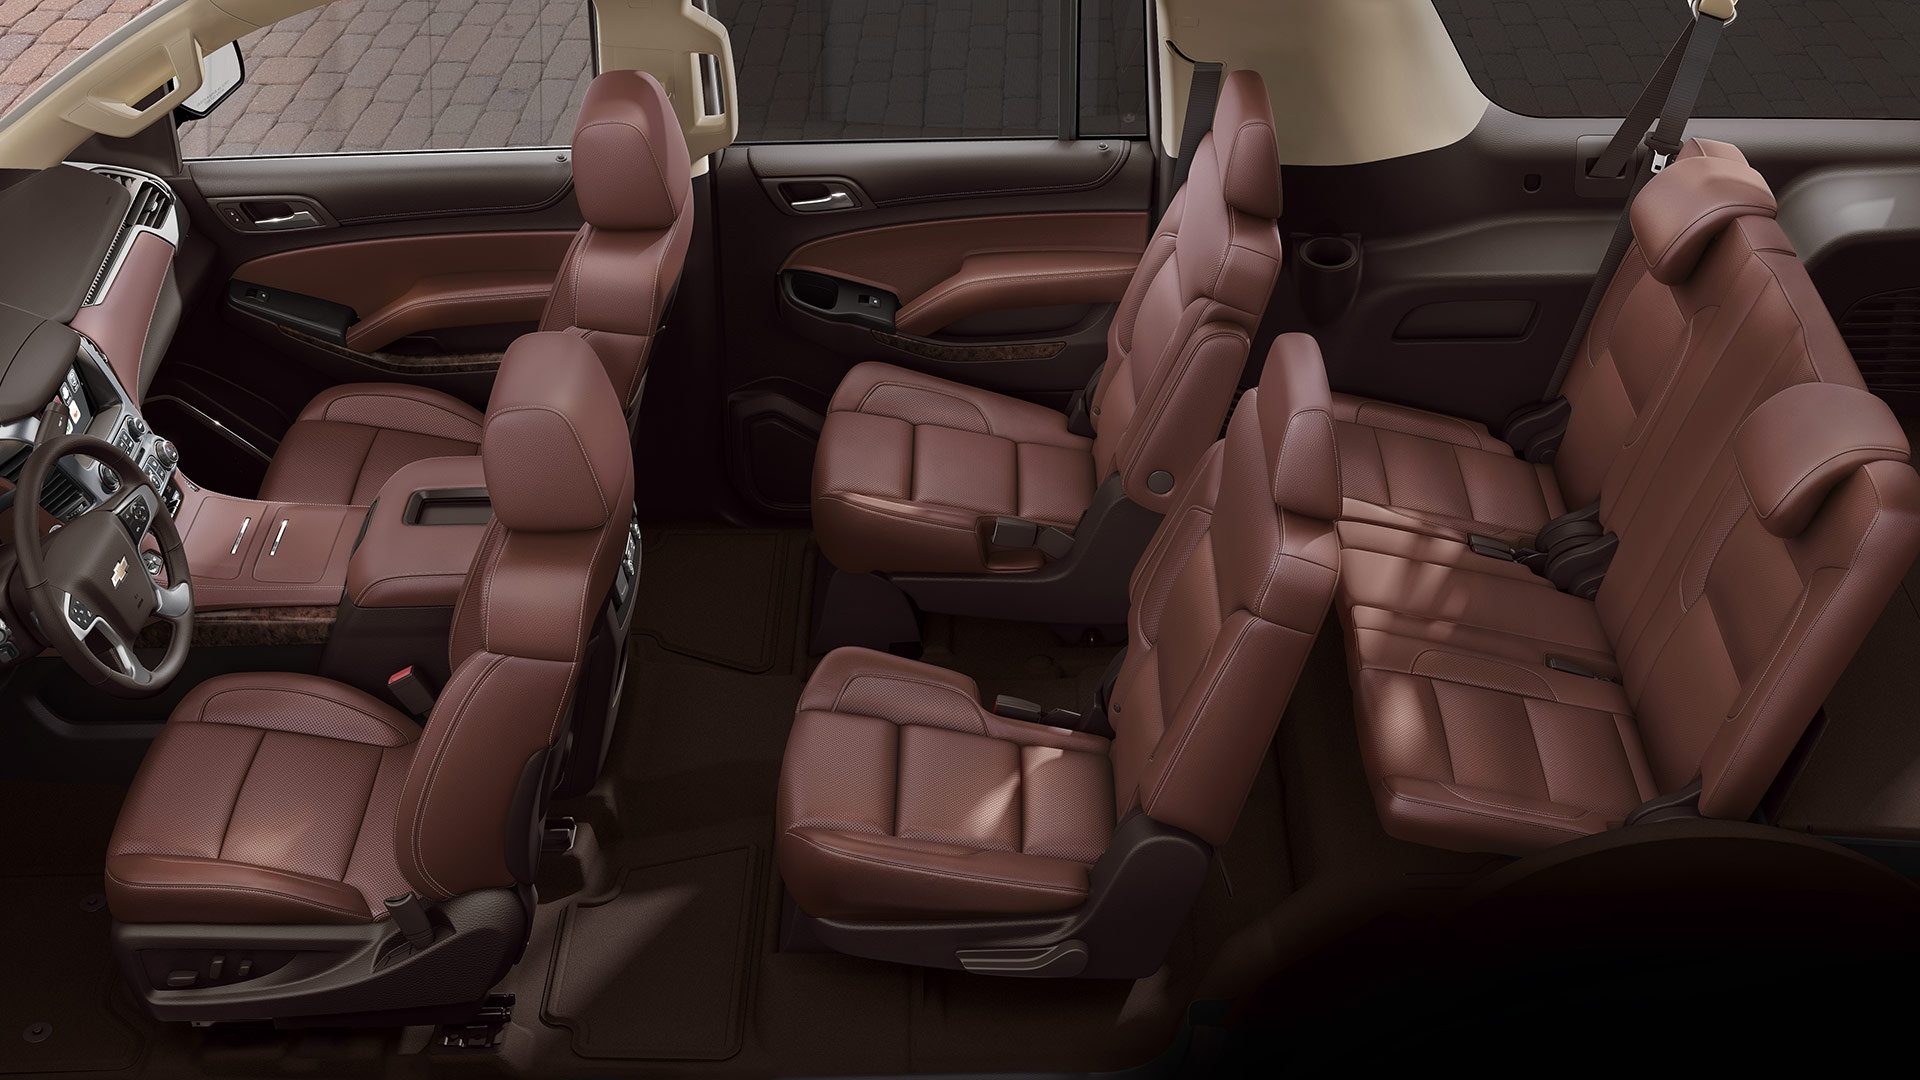 Chevrolet Suburban Seating